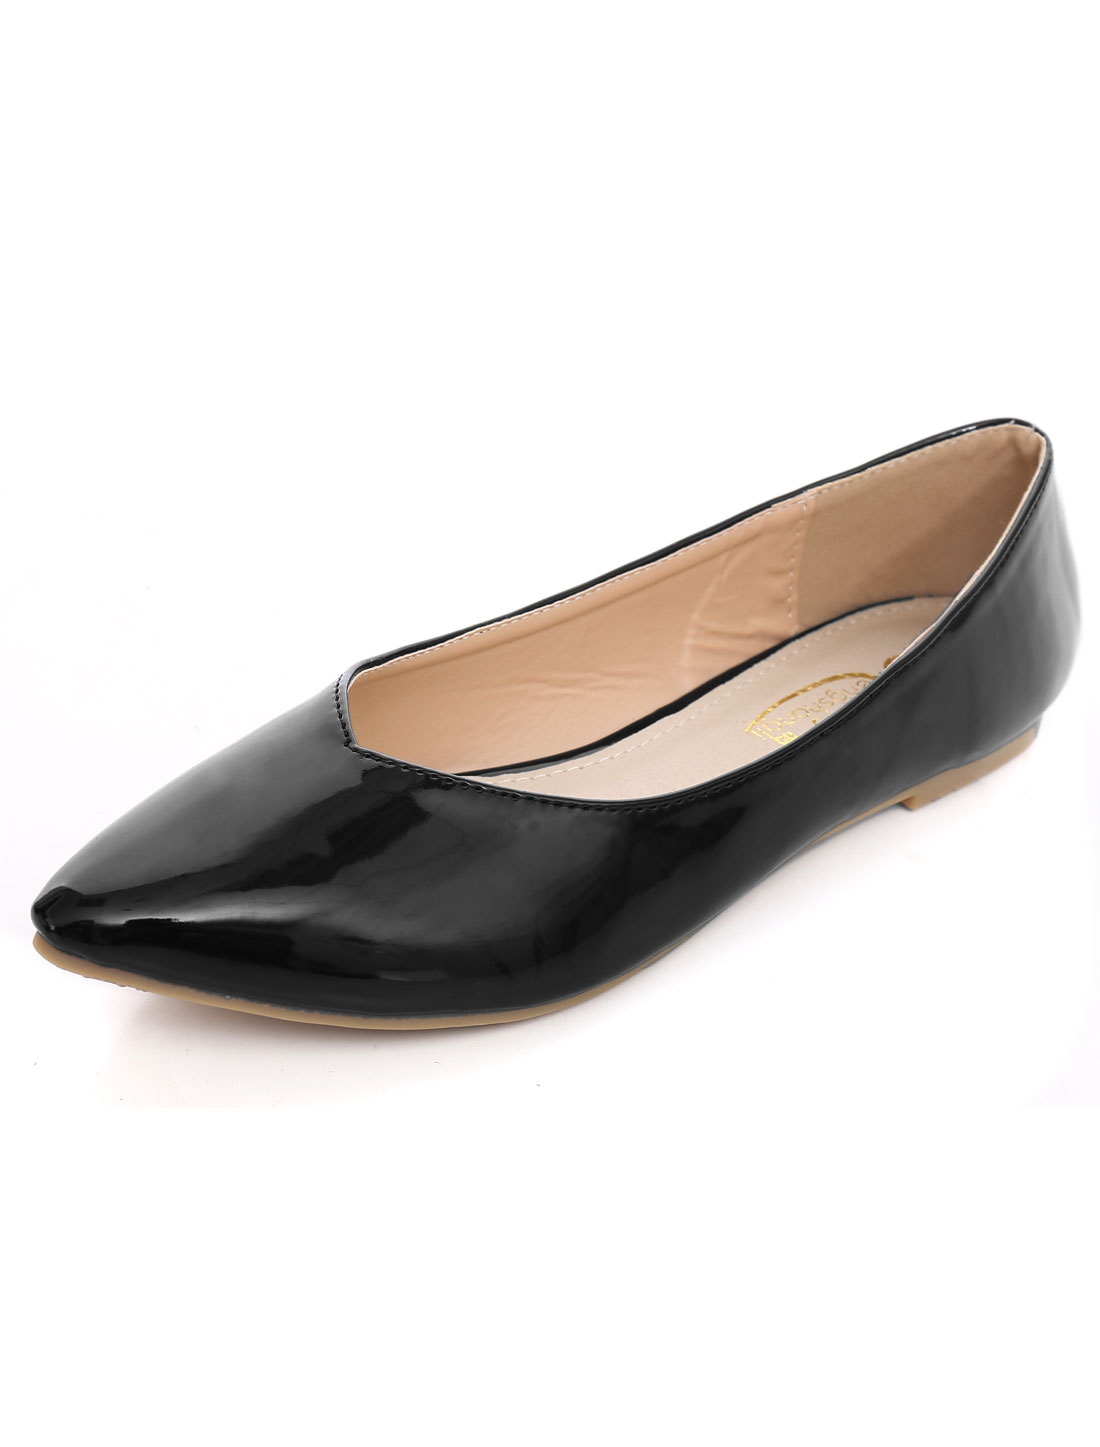 Woman Textured Outside V-Cut Vamp Point-Toe Flats Black US 10